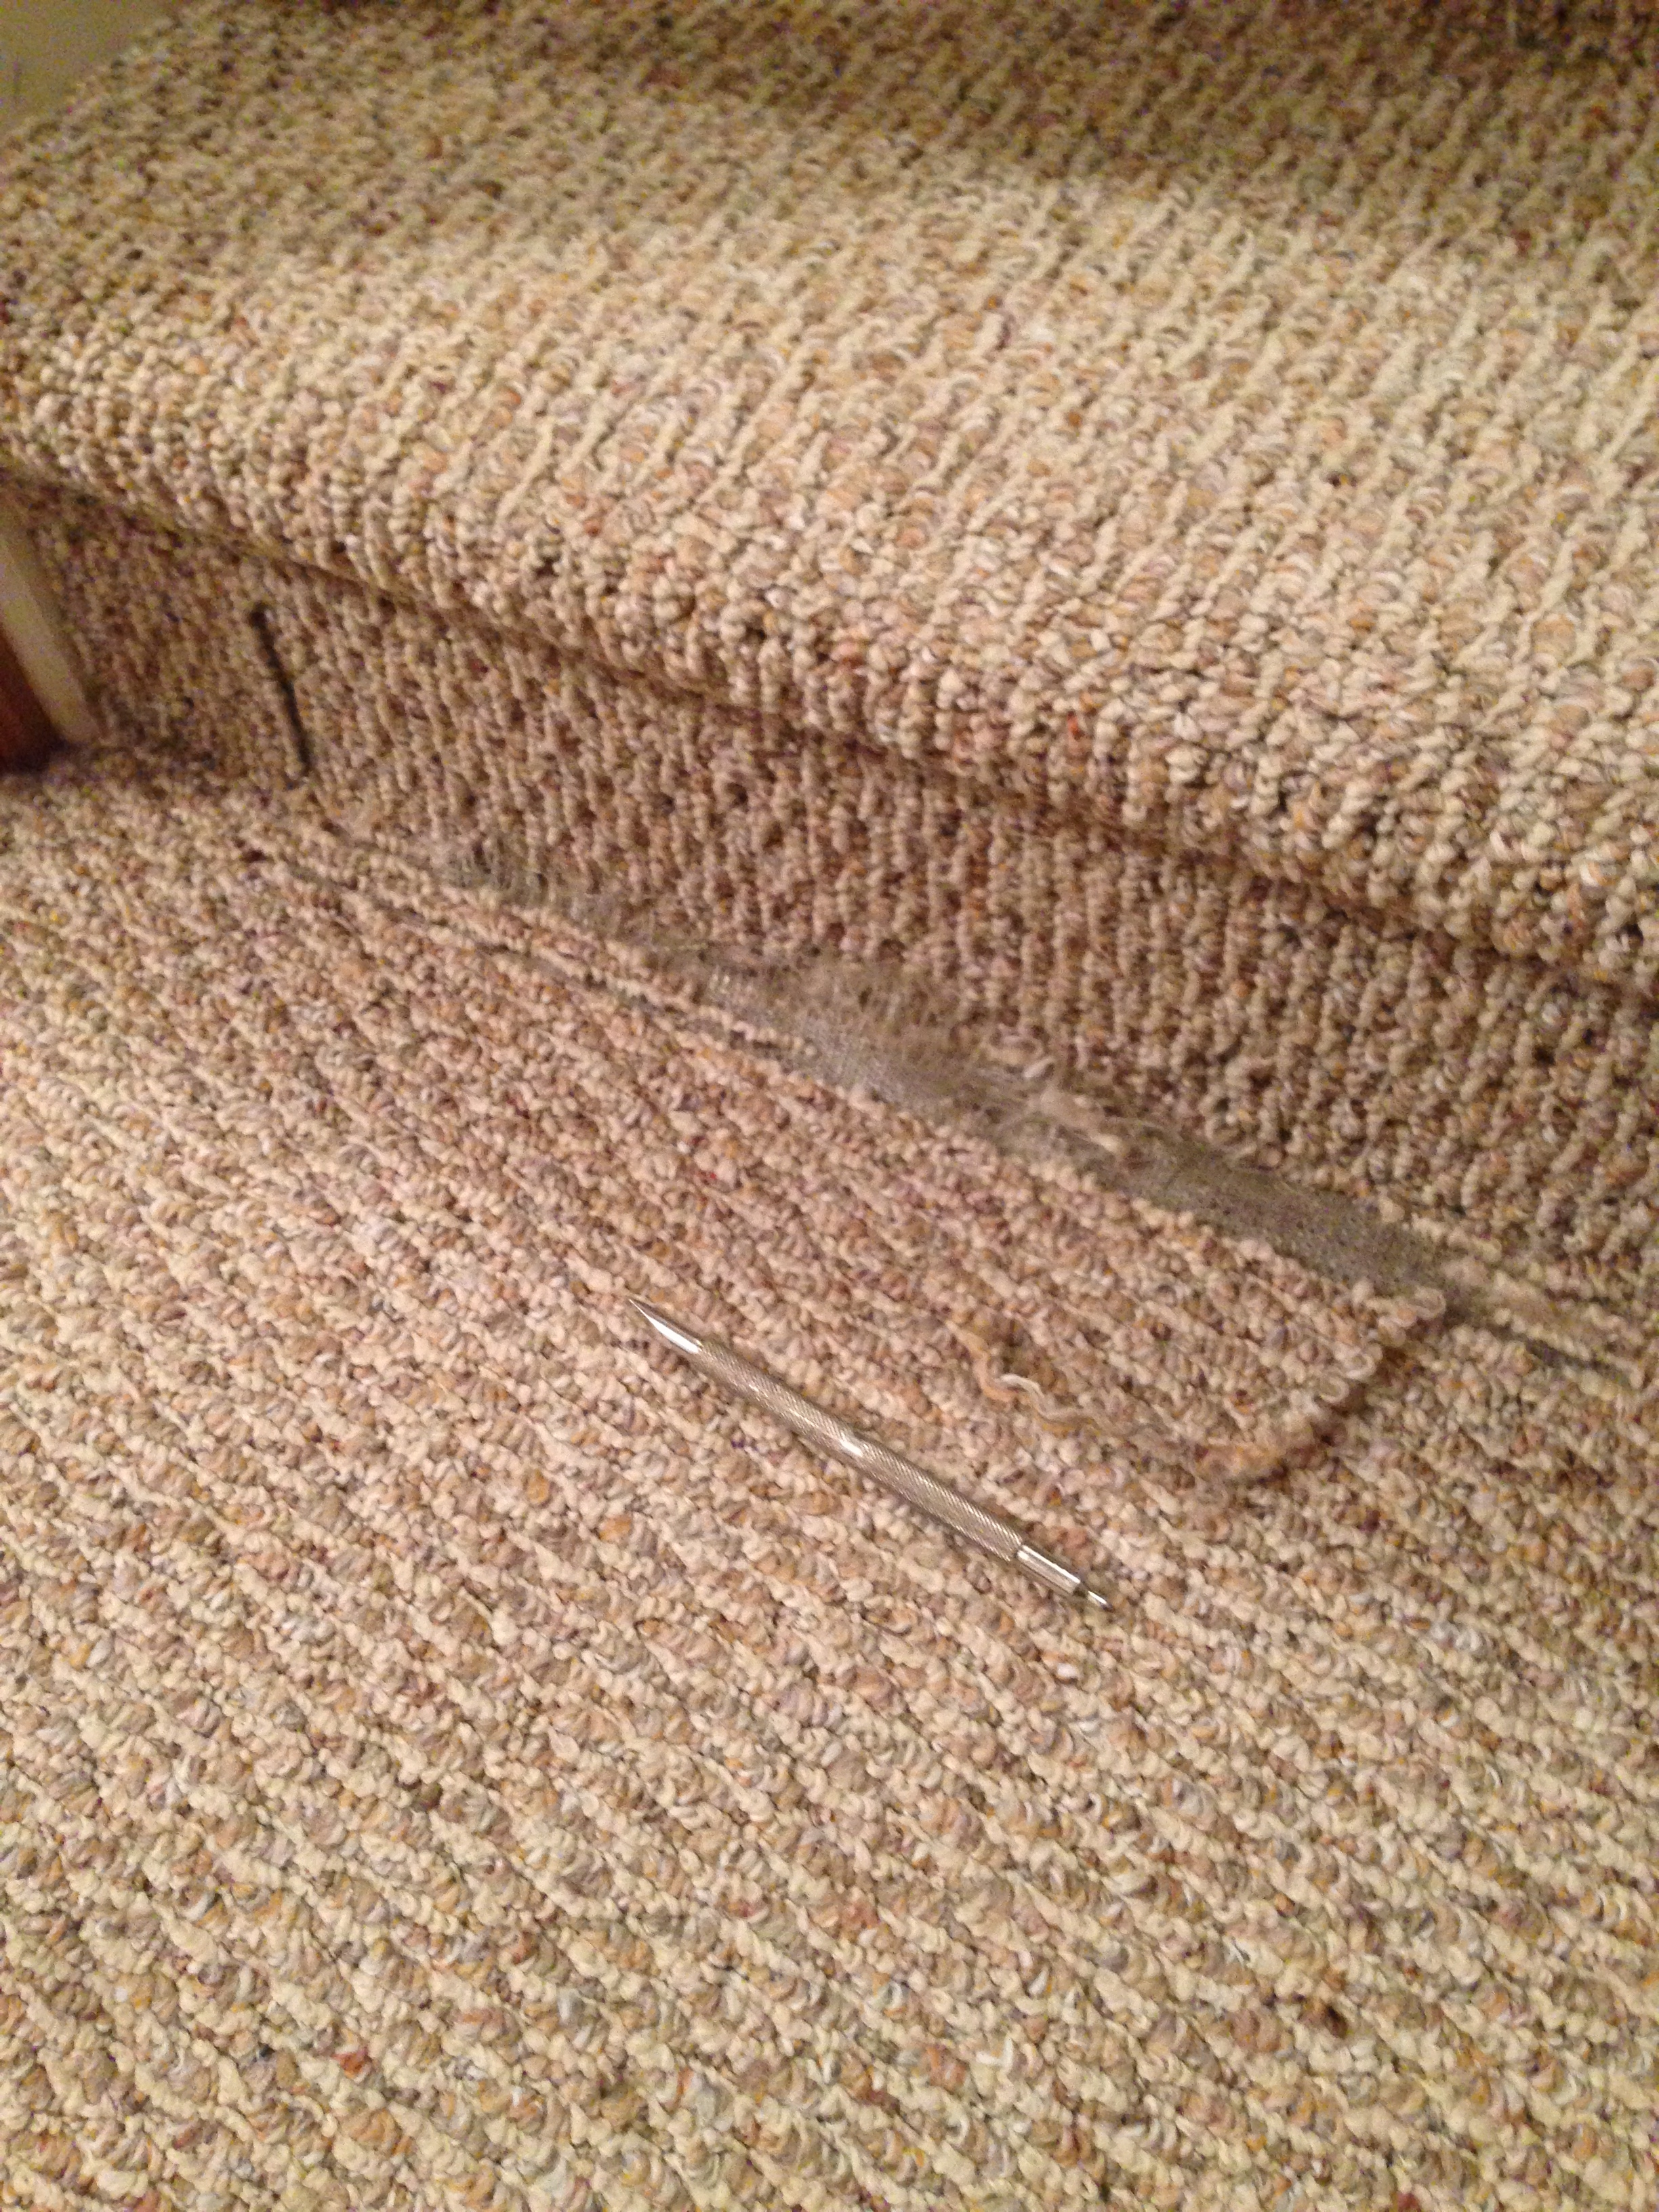 Berber Carpet In Zionsville Seriously Snagged…Icr The Un Snagger | Berber Carpet For Stairs | Decorative | Waterfall Stair | Sophisticated | Durable | Master Bedroom